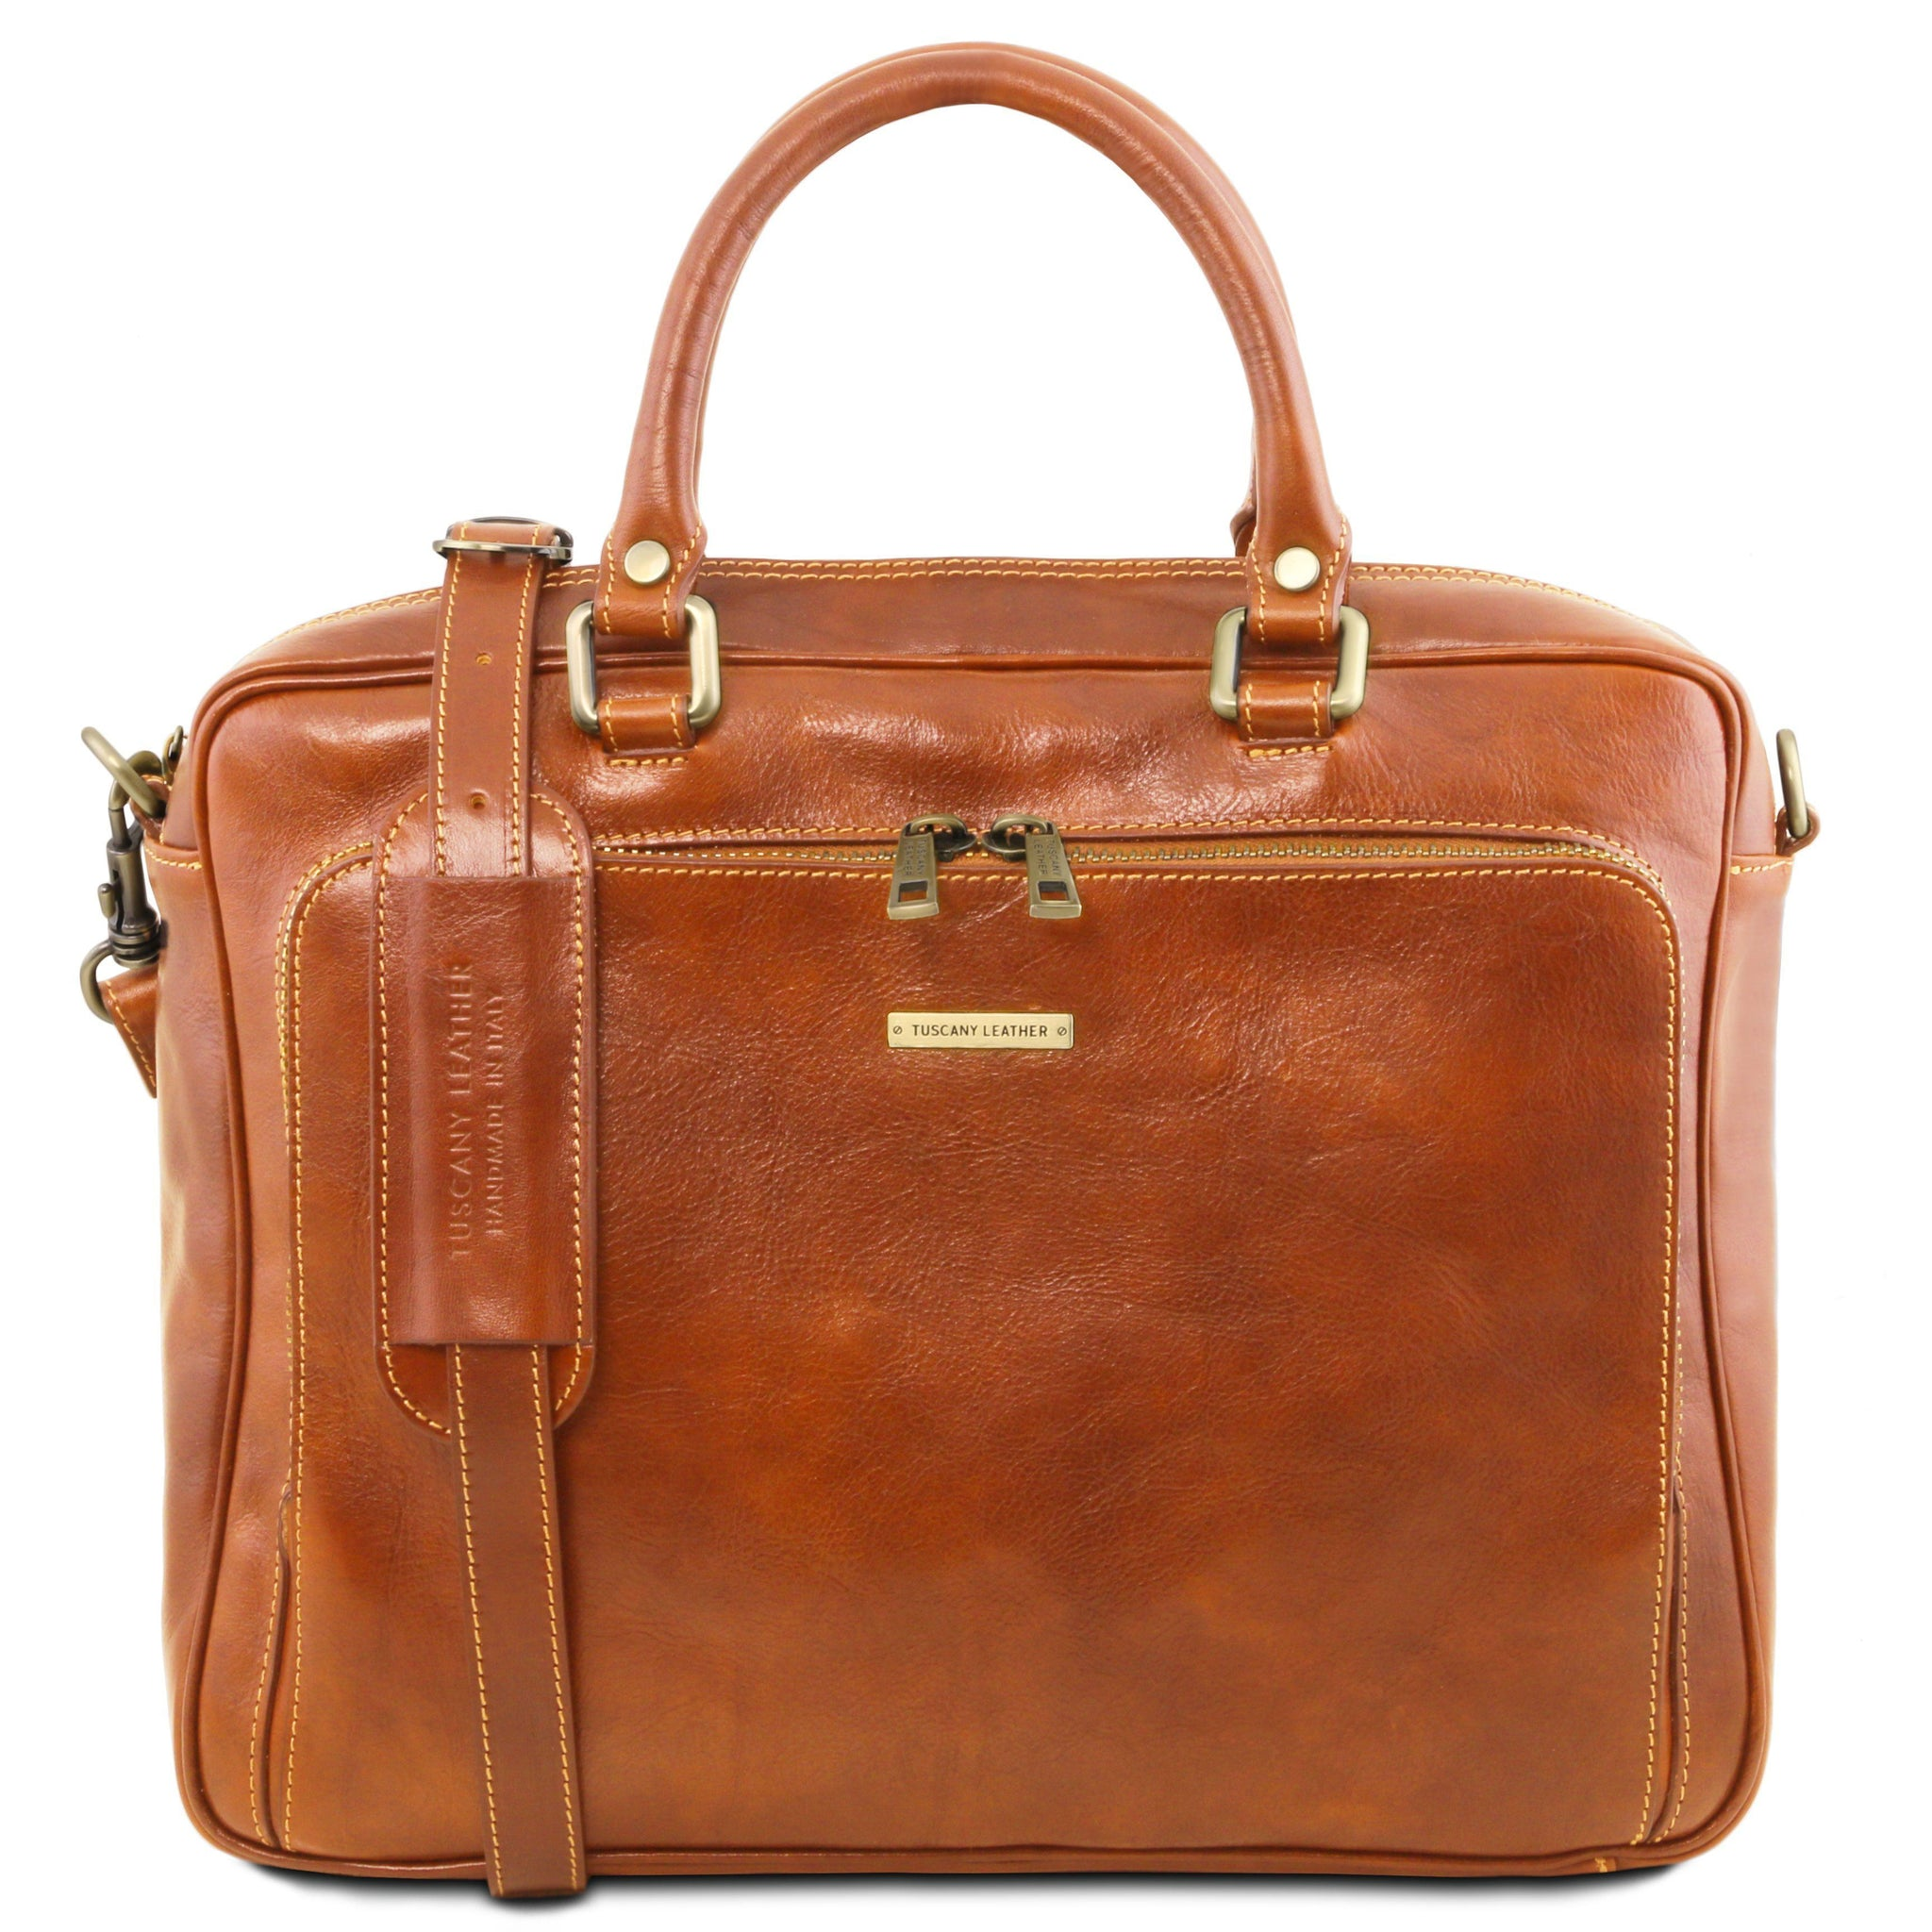 Tuscany Leather 1st Class 'Pisa' Leather Laptop Briefcase Laptop Briefcase Tuscany Leather Honey